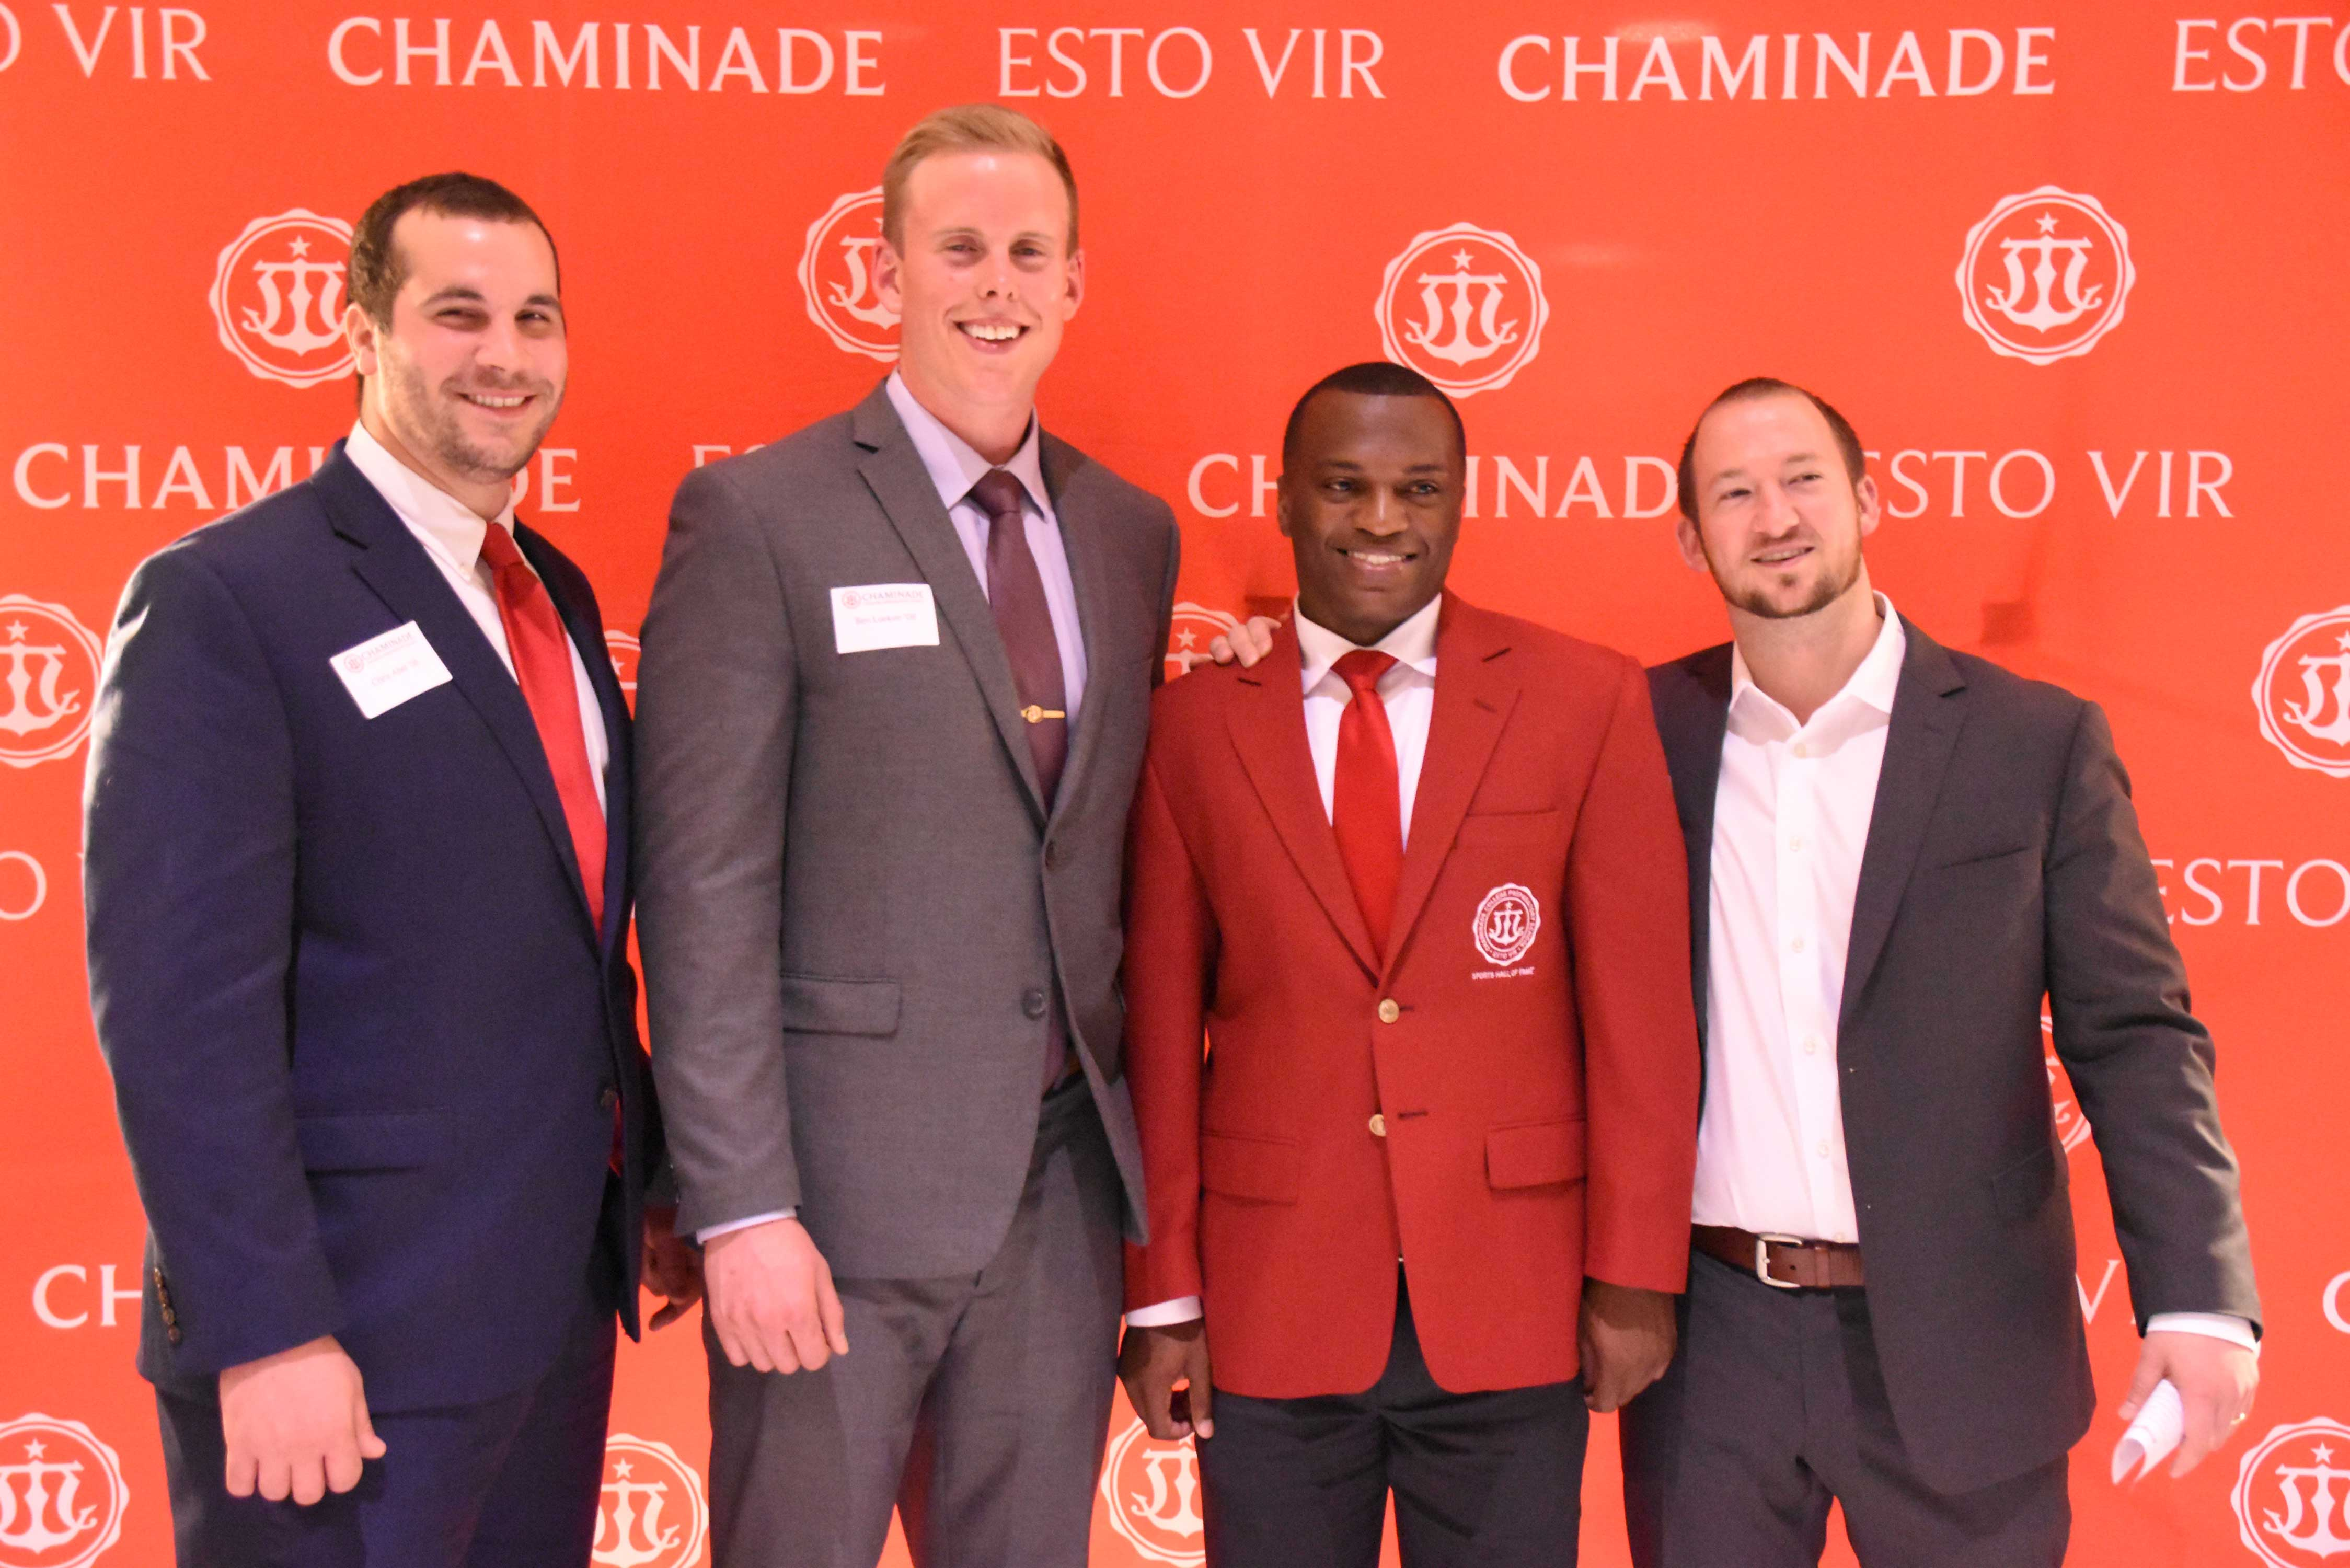 2018 Chaminade Sports Hall of Fame